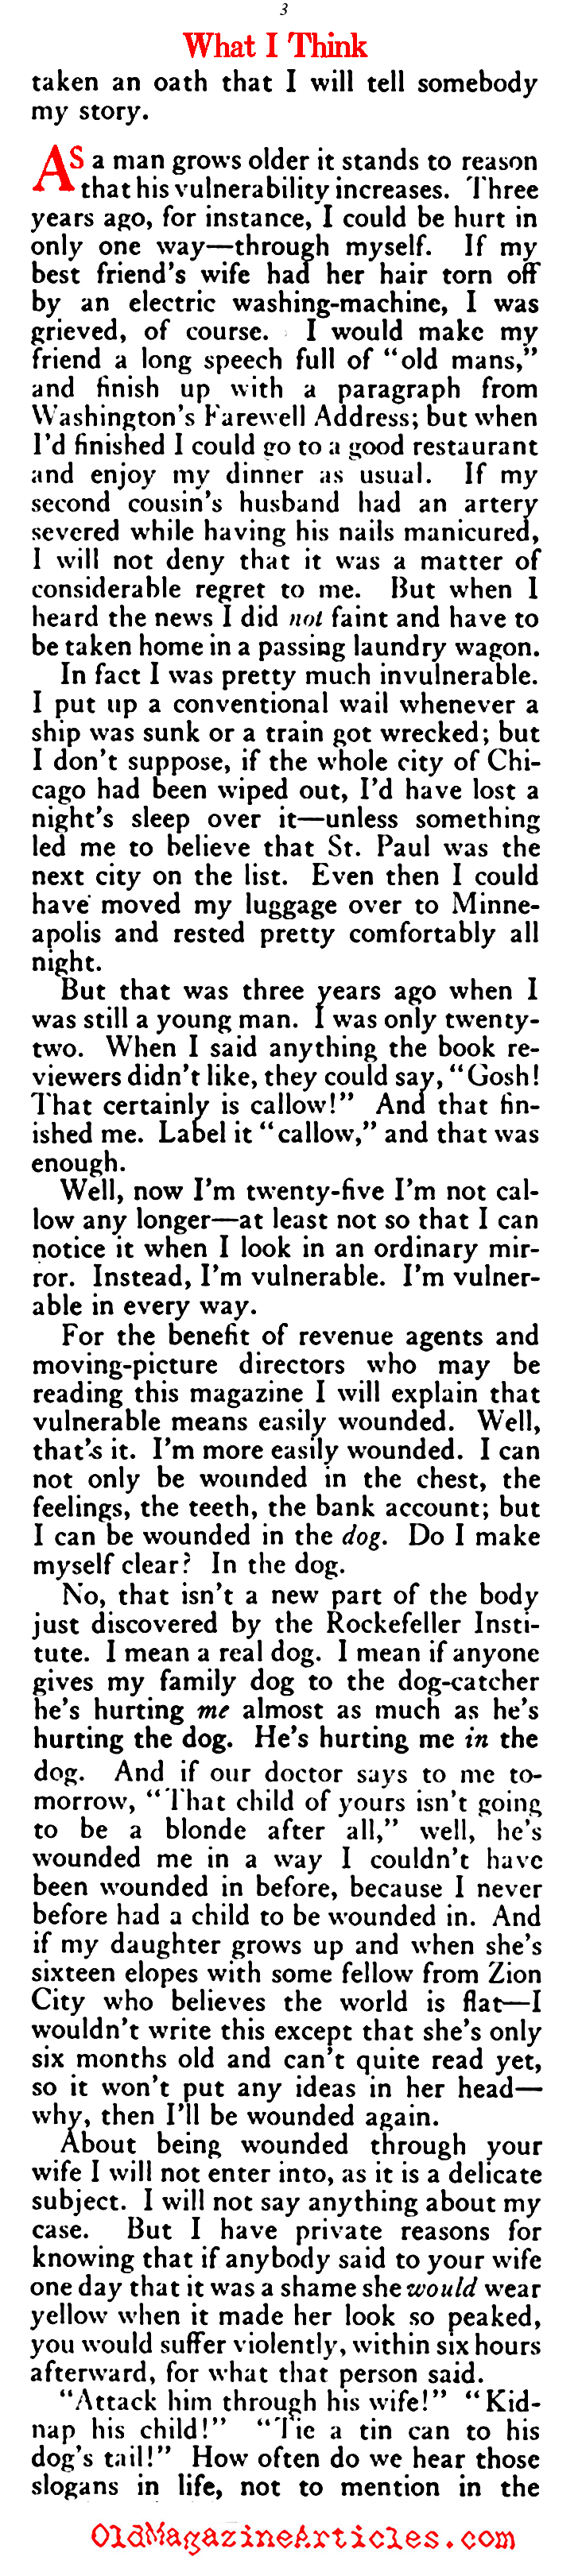 F. Scott Fitzgerald at Twenty-Five (The American Magazine, 1922)